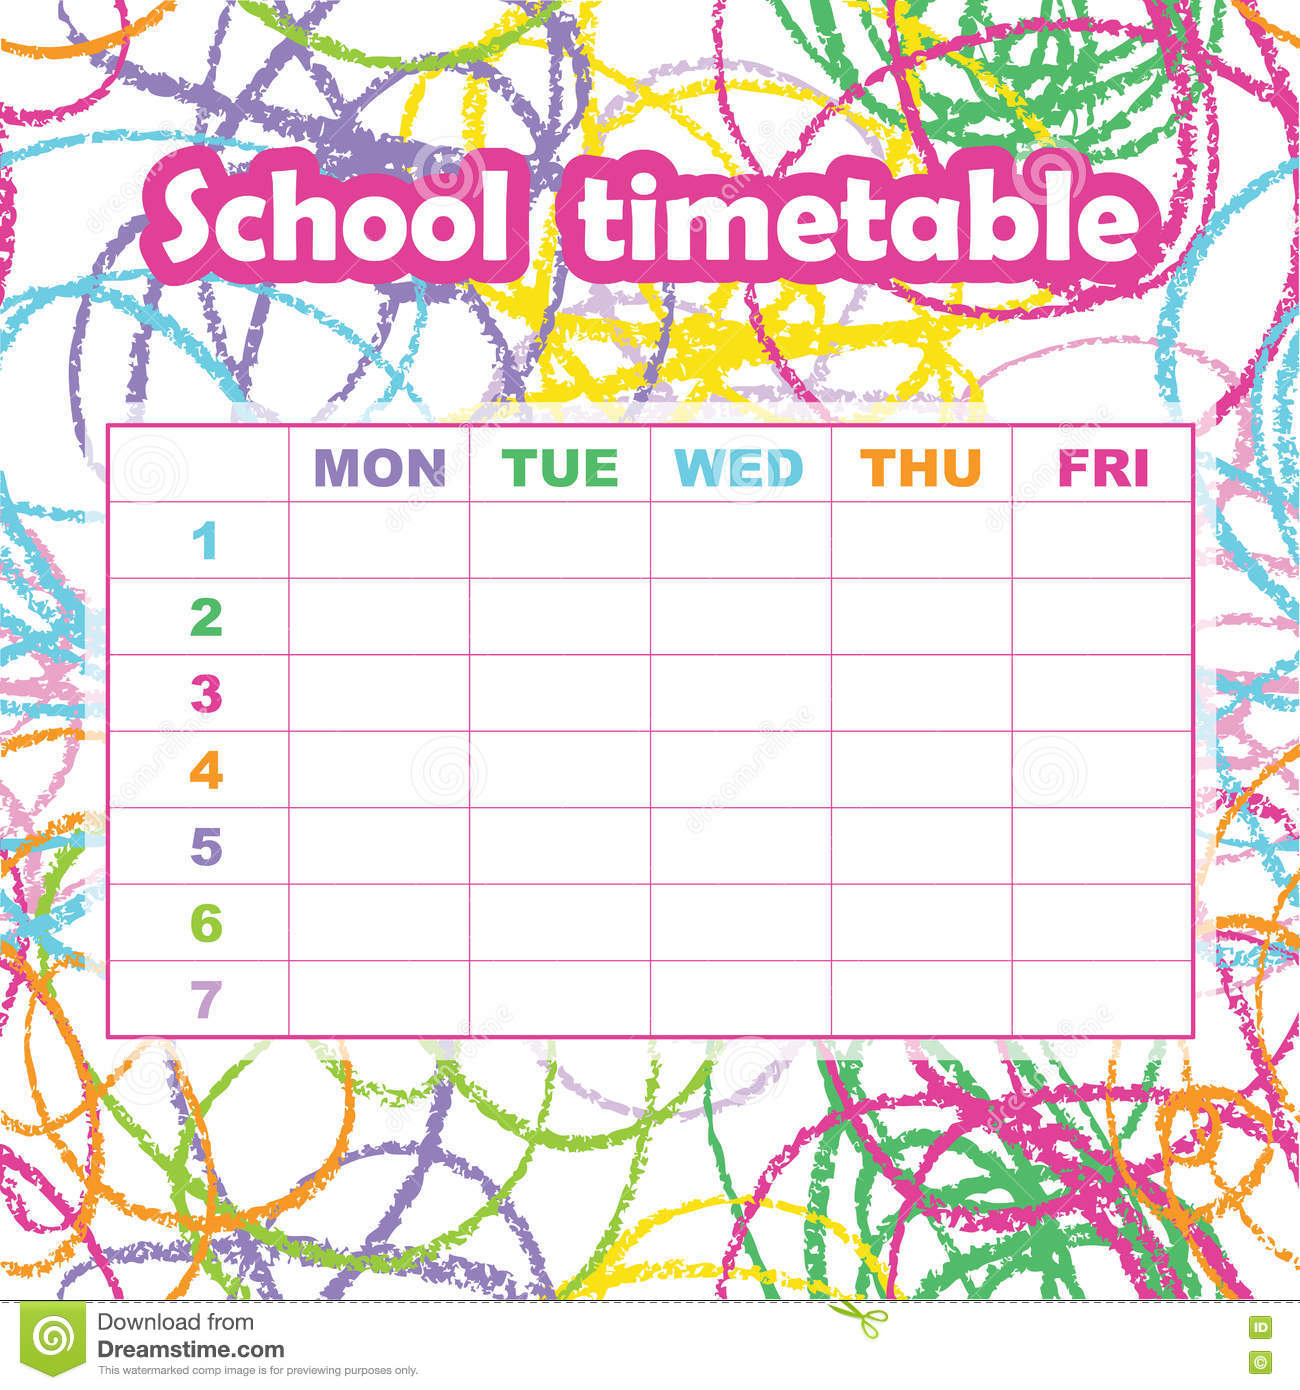 School Timetable Template For Students And Pupils